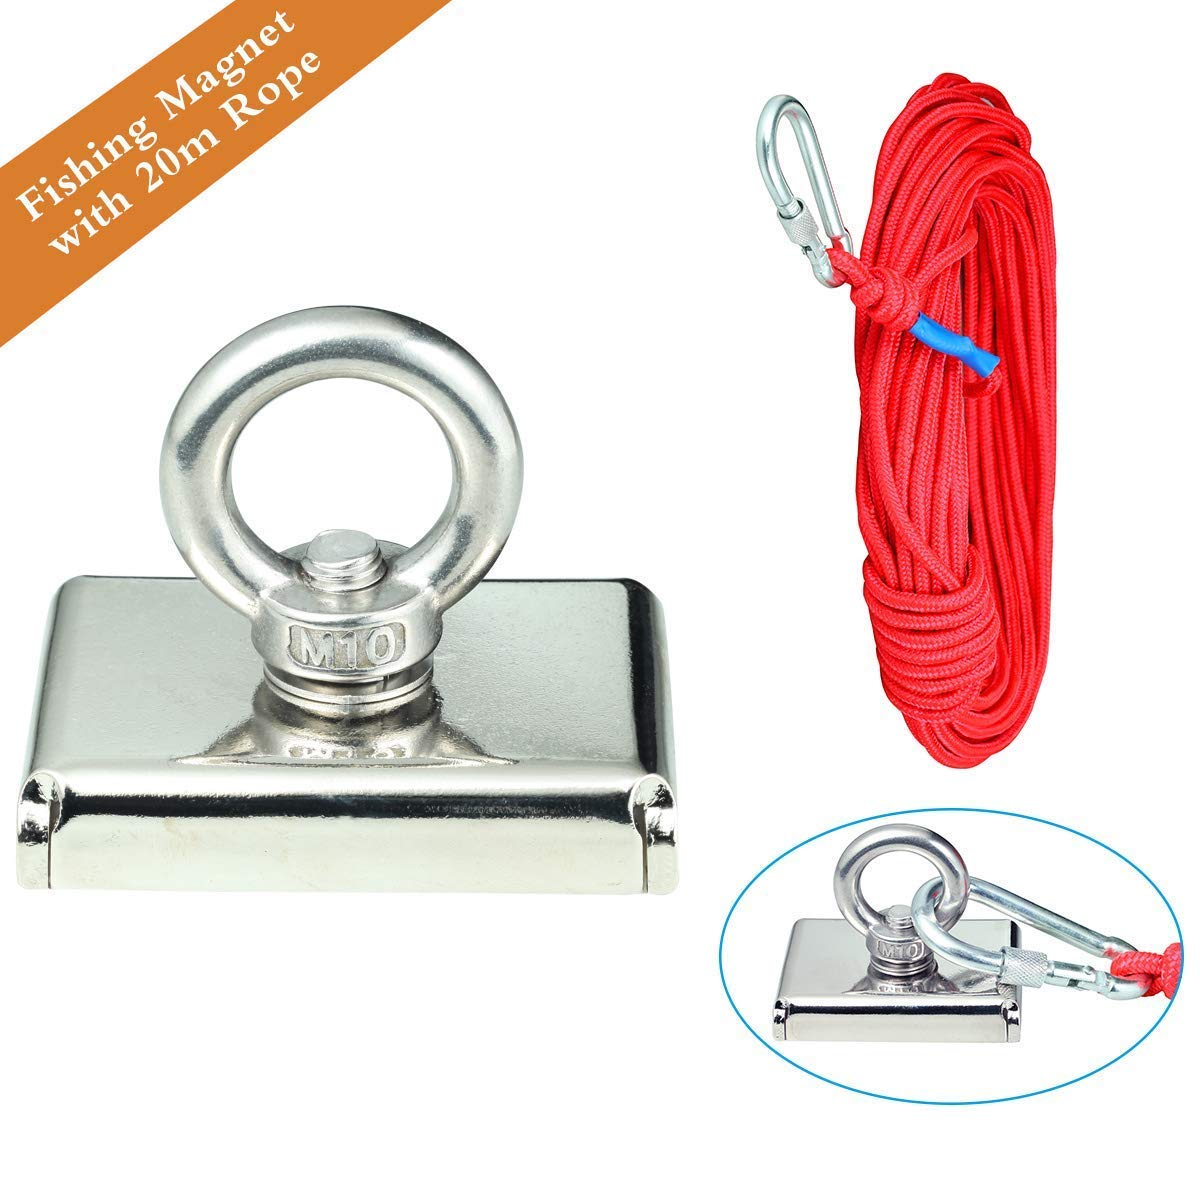 Powerful Fishing Magnets Set Wukong Model SNN75 242LBS Neodymium Magnets with Eyebolt Including Diameter 1/4'' 65.6 Feet Red Strong Braided Rope and Firm Security Lock.